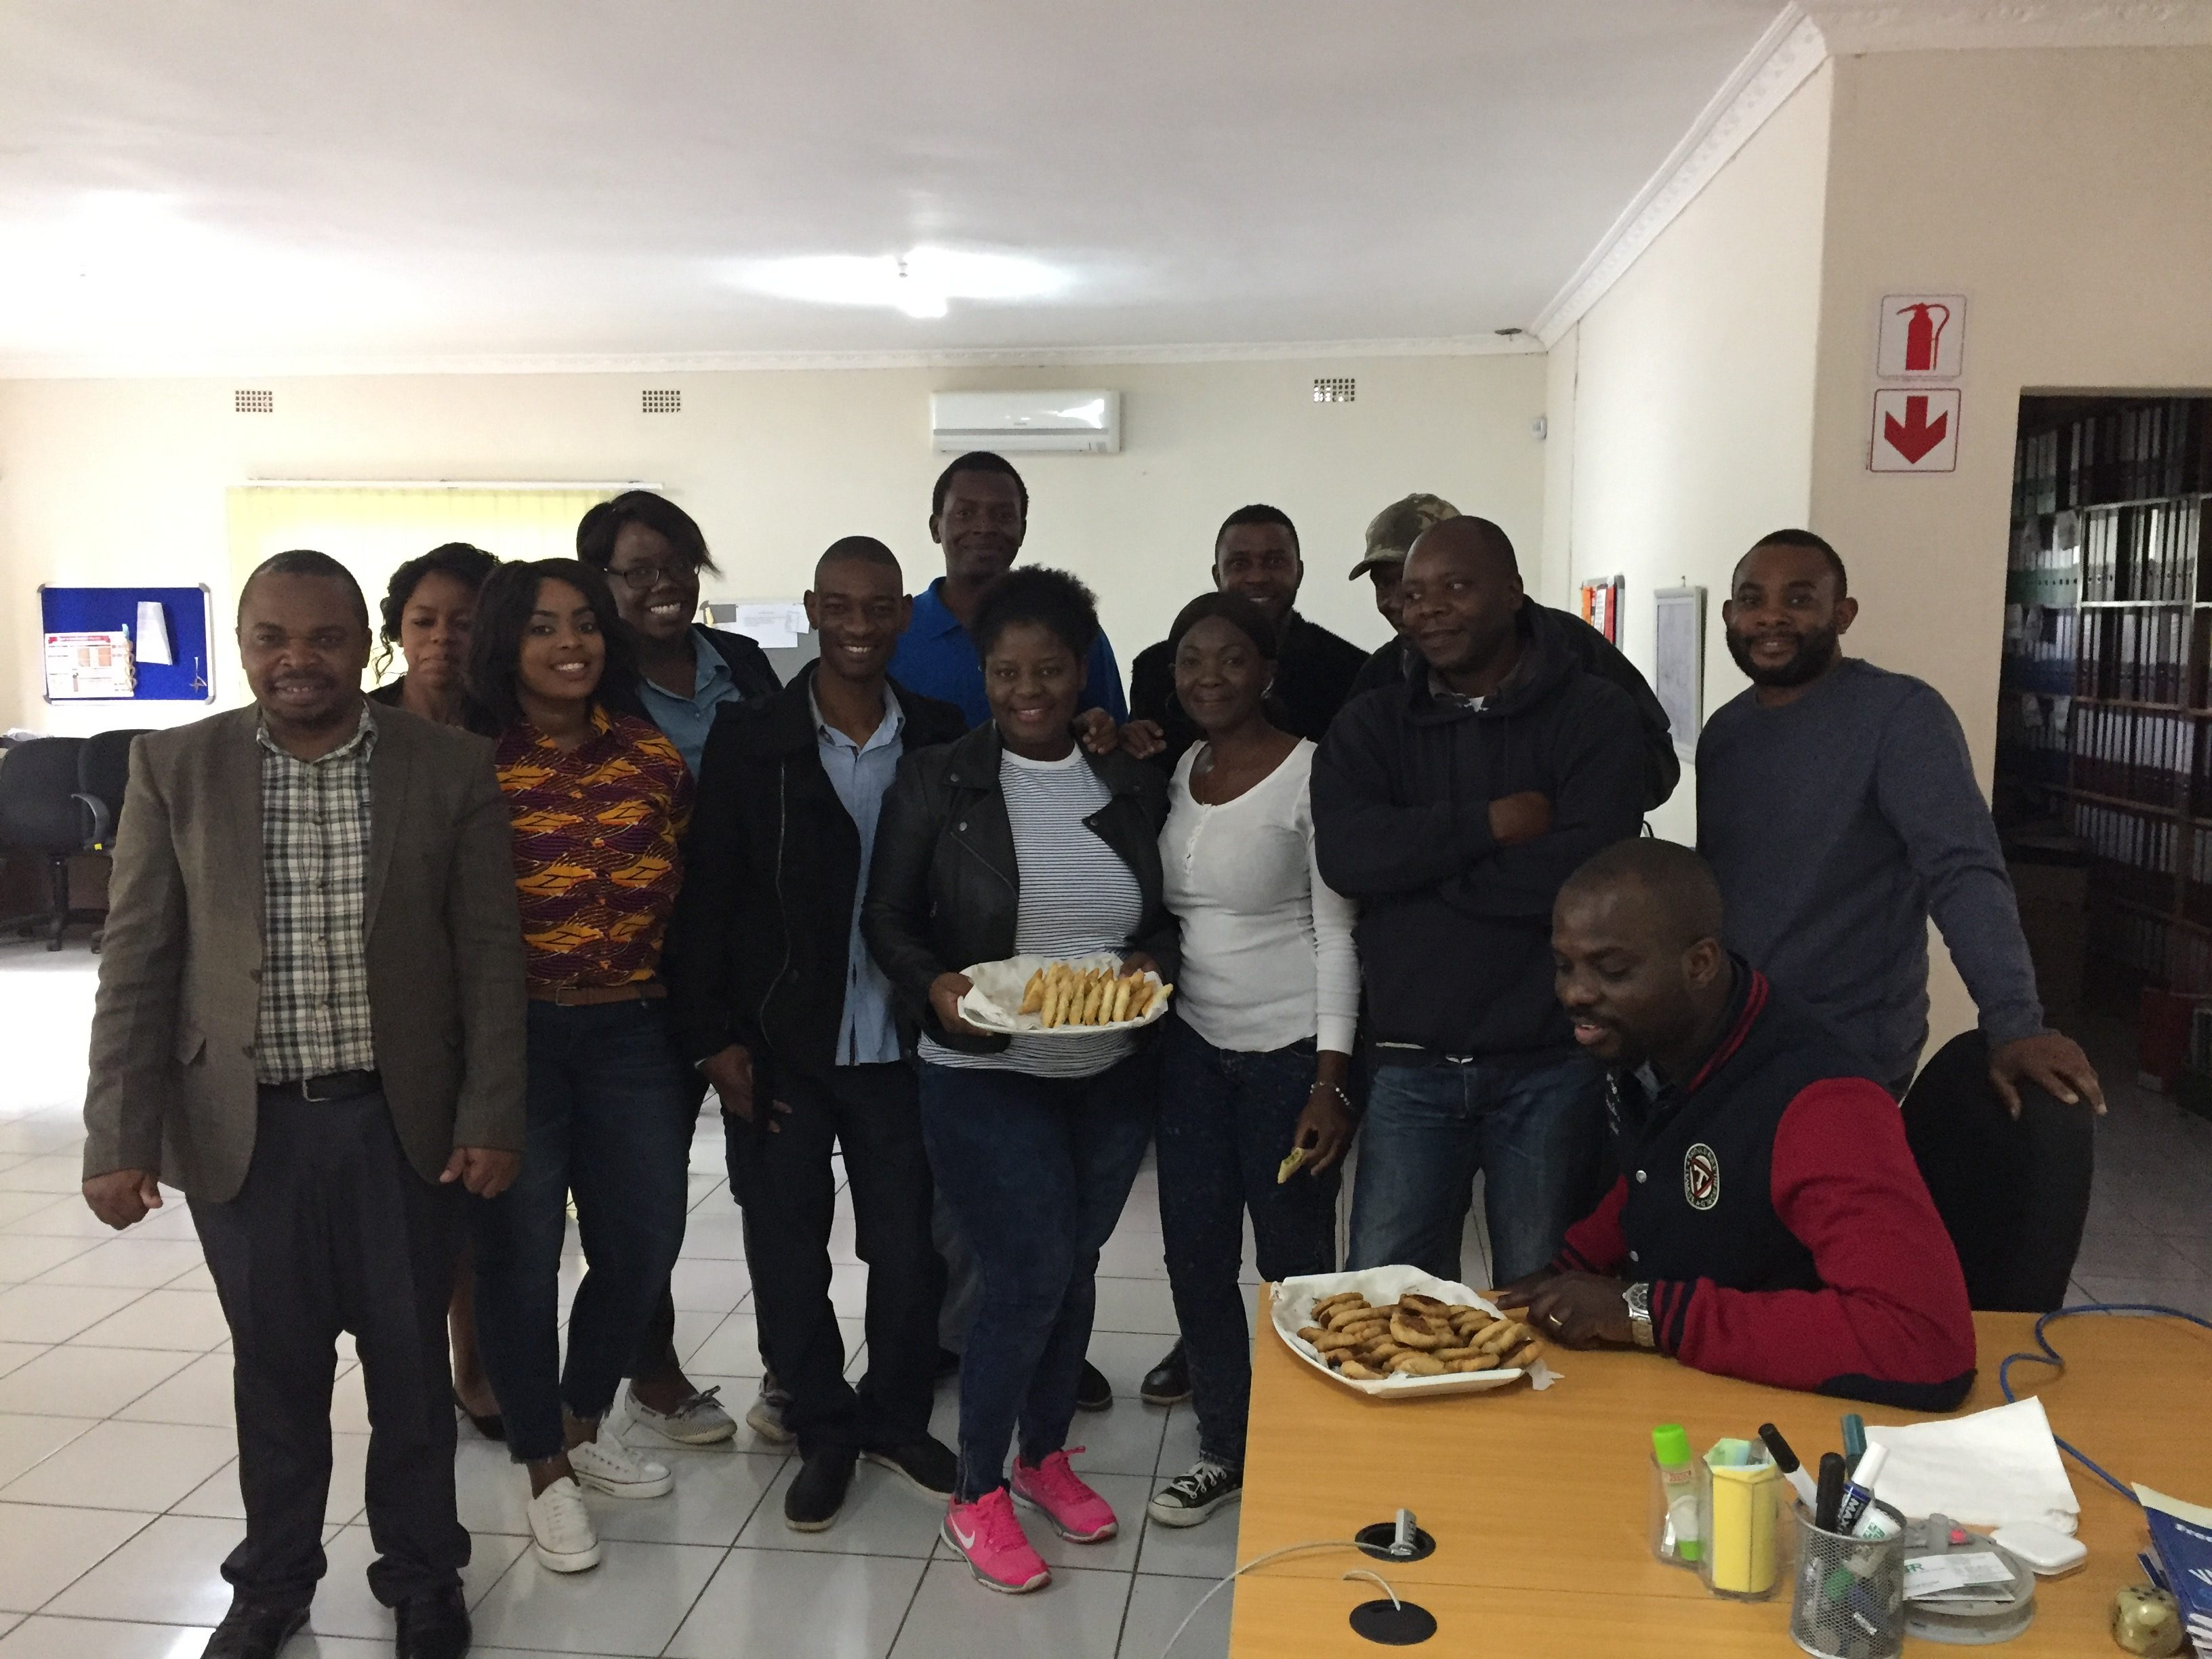 On her last day of the fellowship, Ankita brought in some home made food so that she could share a meal with her awesome colleagues at Zambian Governance Foundation.